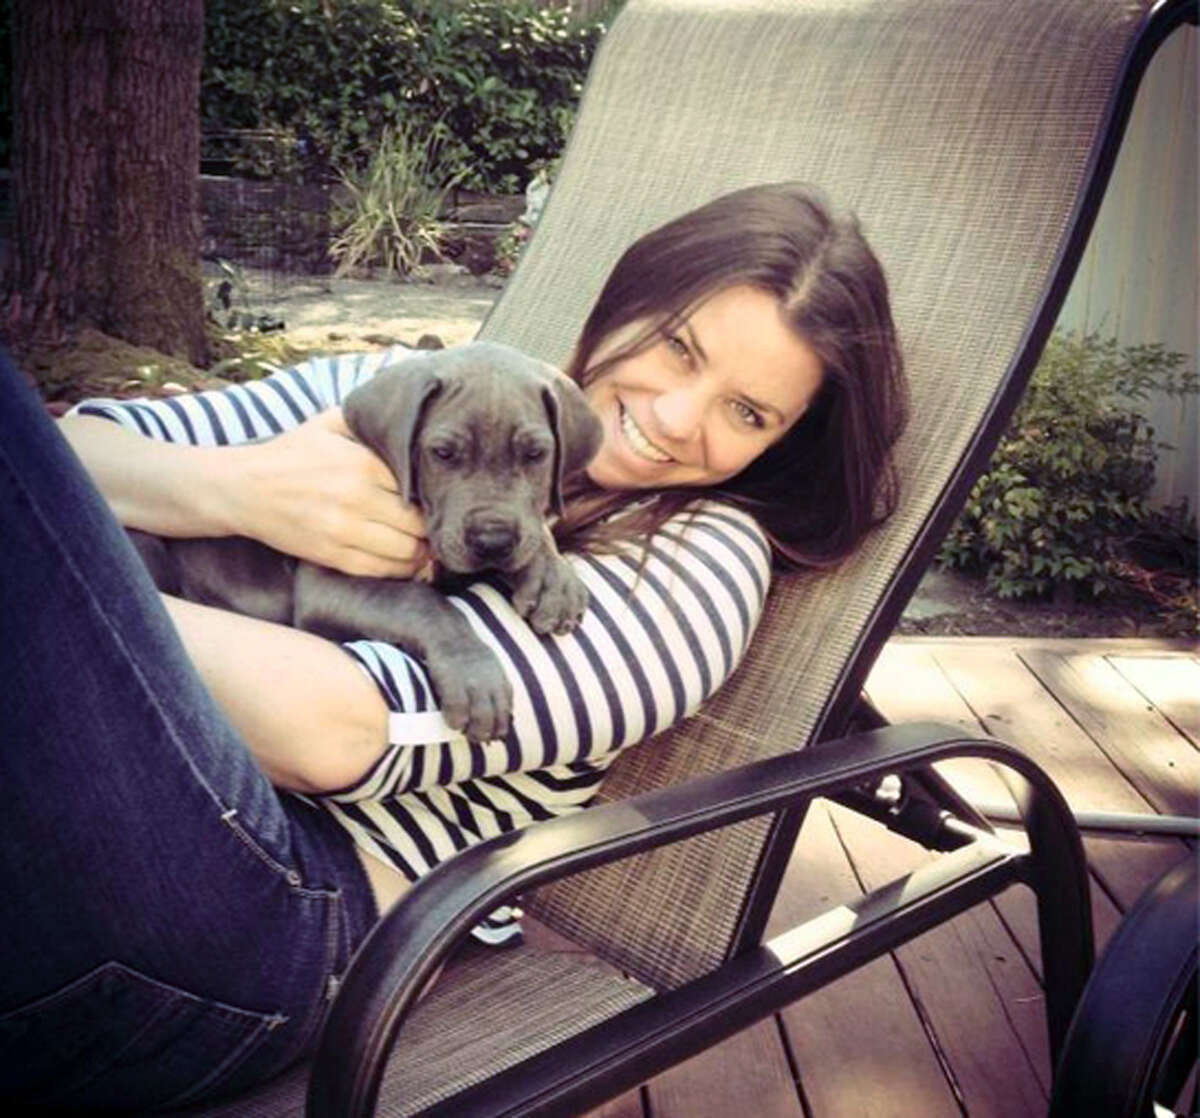 This undated file photo provided by the Maynard family shows Brittany Maynard, a 29-year-old terminally ill woman took her own life under Oregon?'s death with dignity law in 2014. (AP Photo/Maynard Family, File)